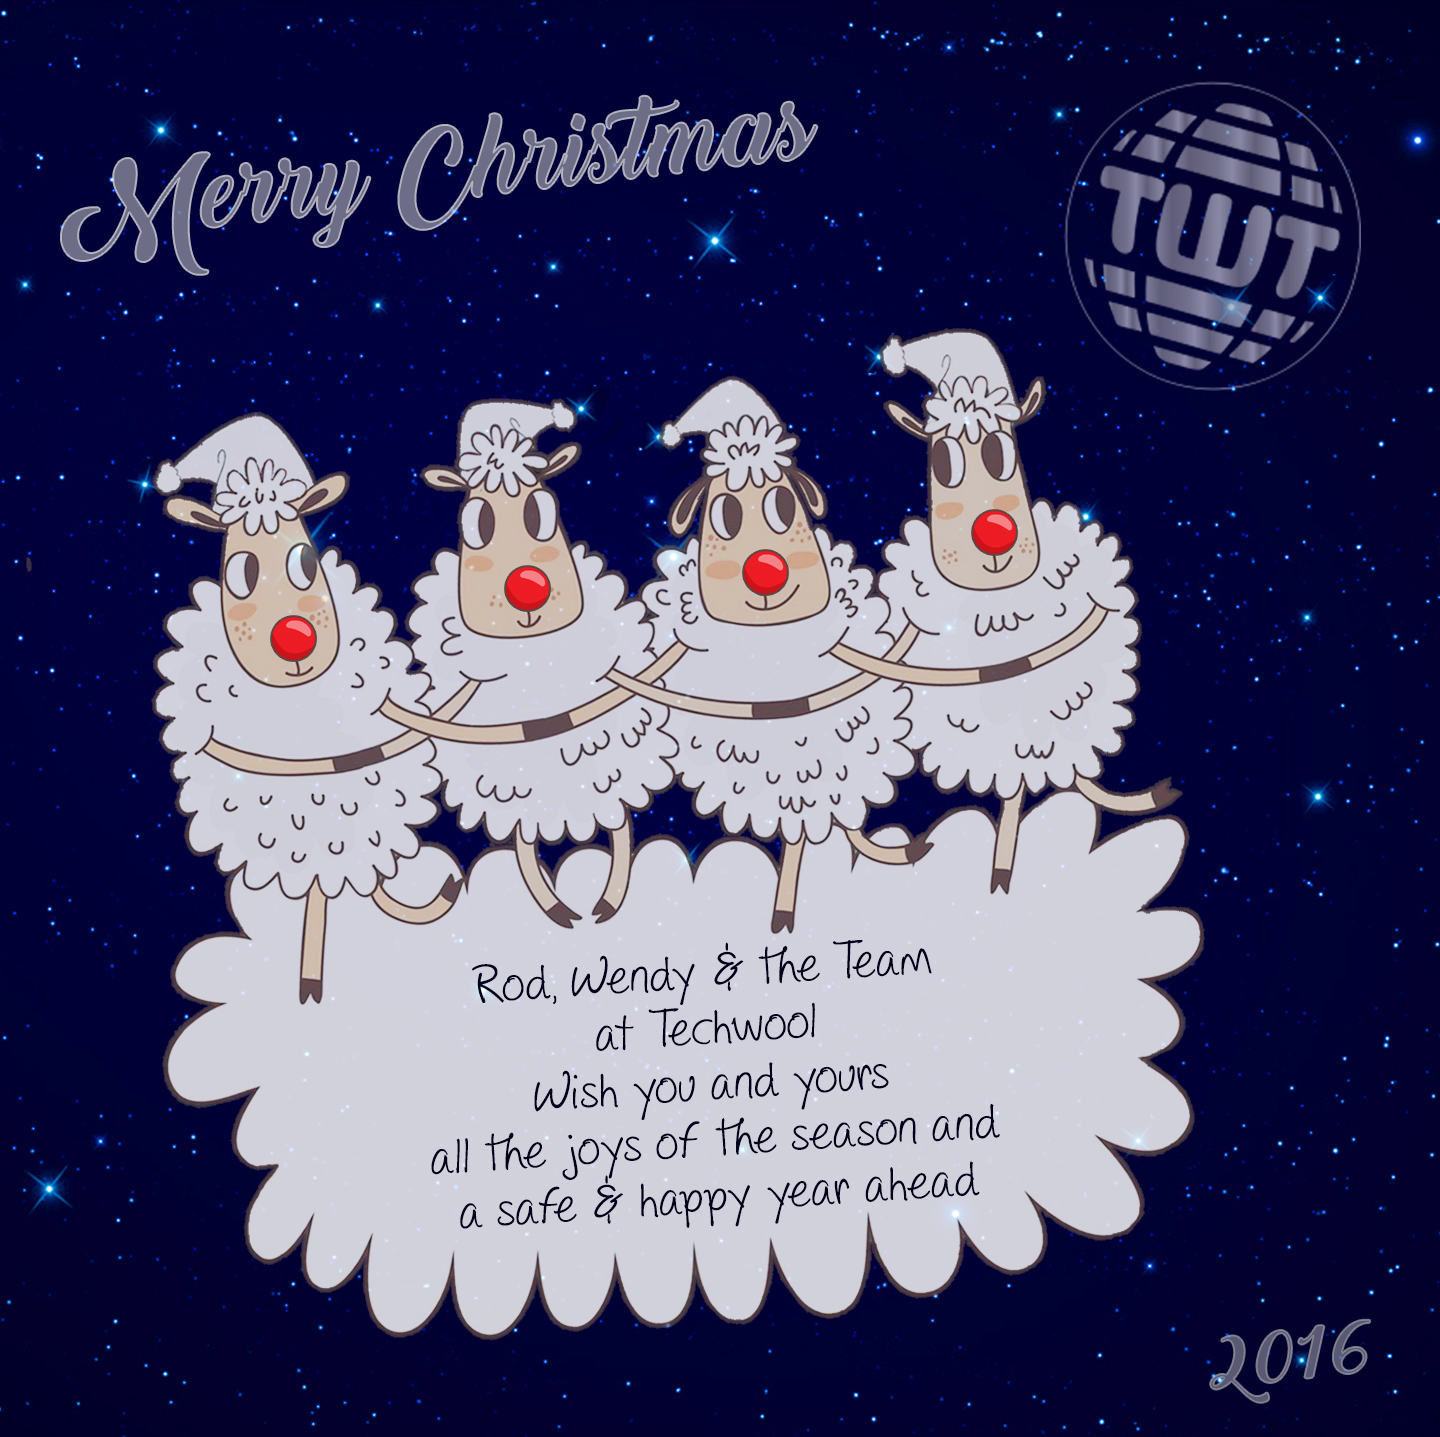 twt-christmas-wishes-2016